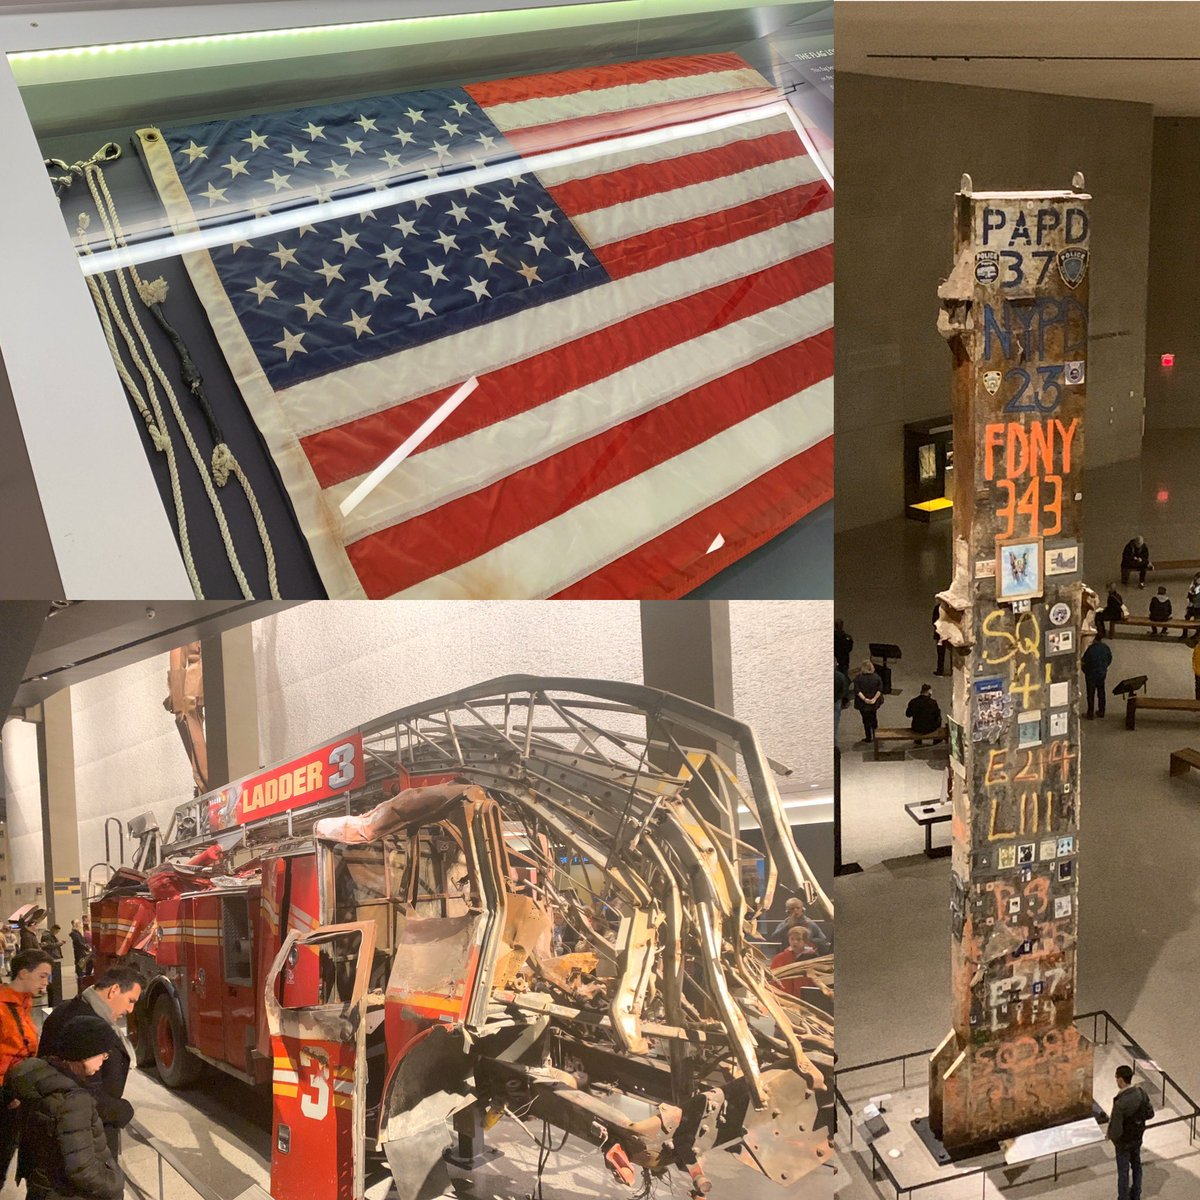 A very moving visit to the #911memorial museum. My thoughts brought to my amazing former coworkers at @FDNY and @NYPDnews - thanks to all those who responded, those who died and those who continue to protect the city.